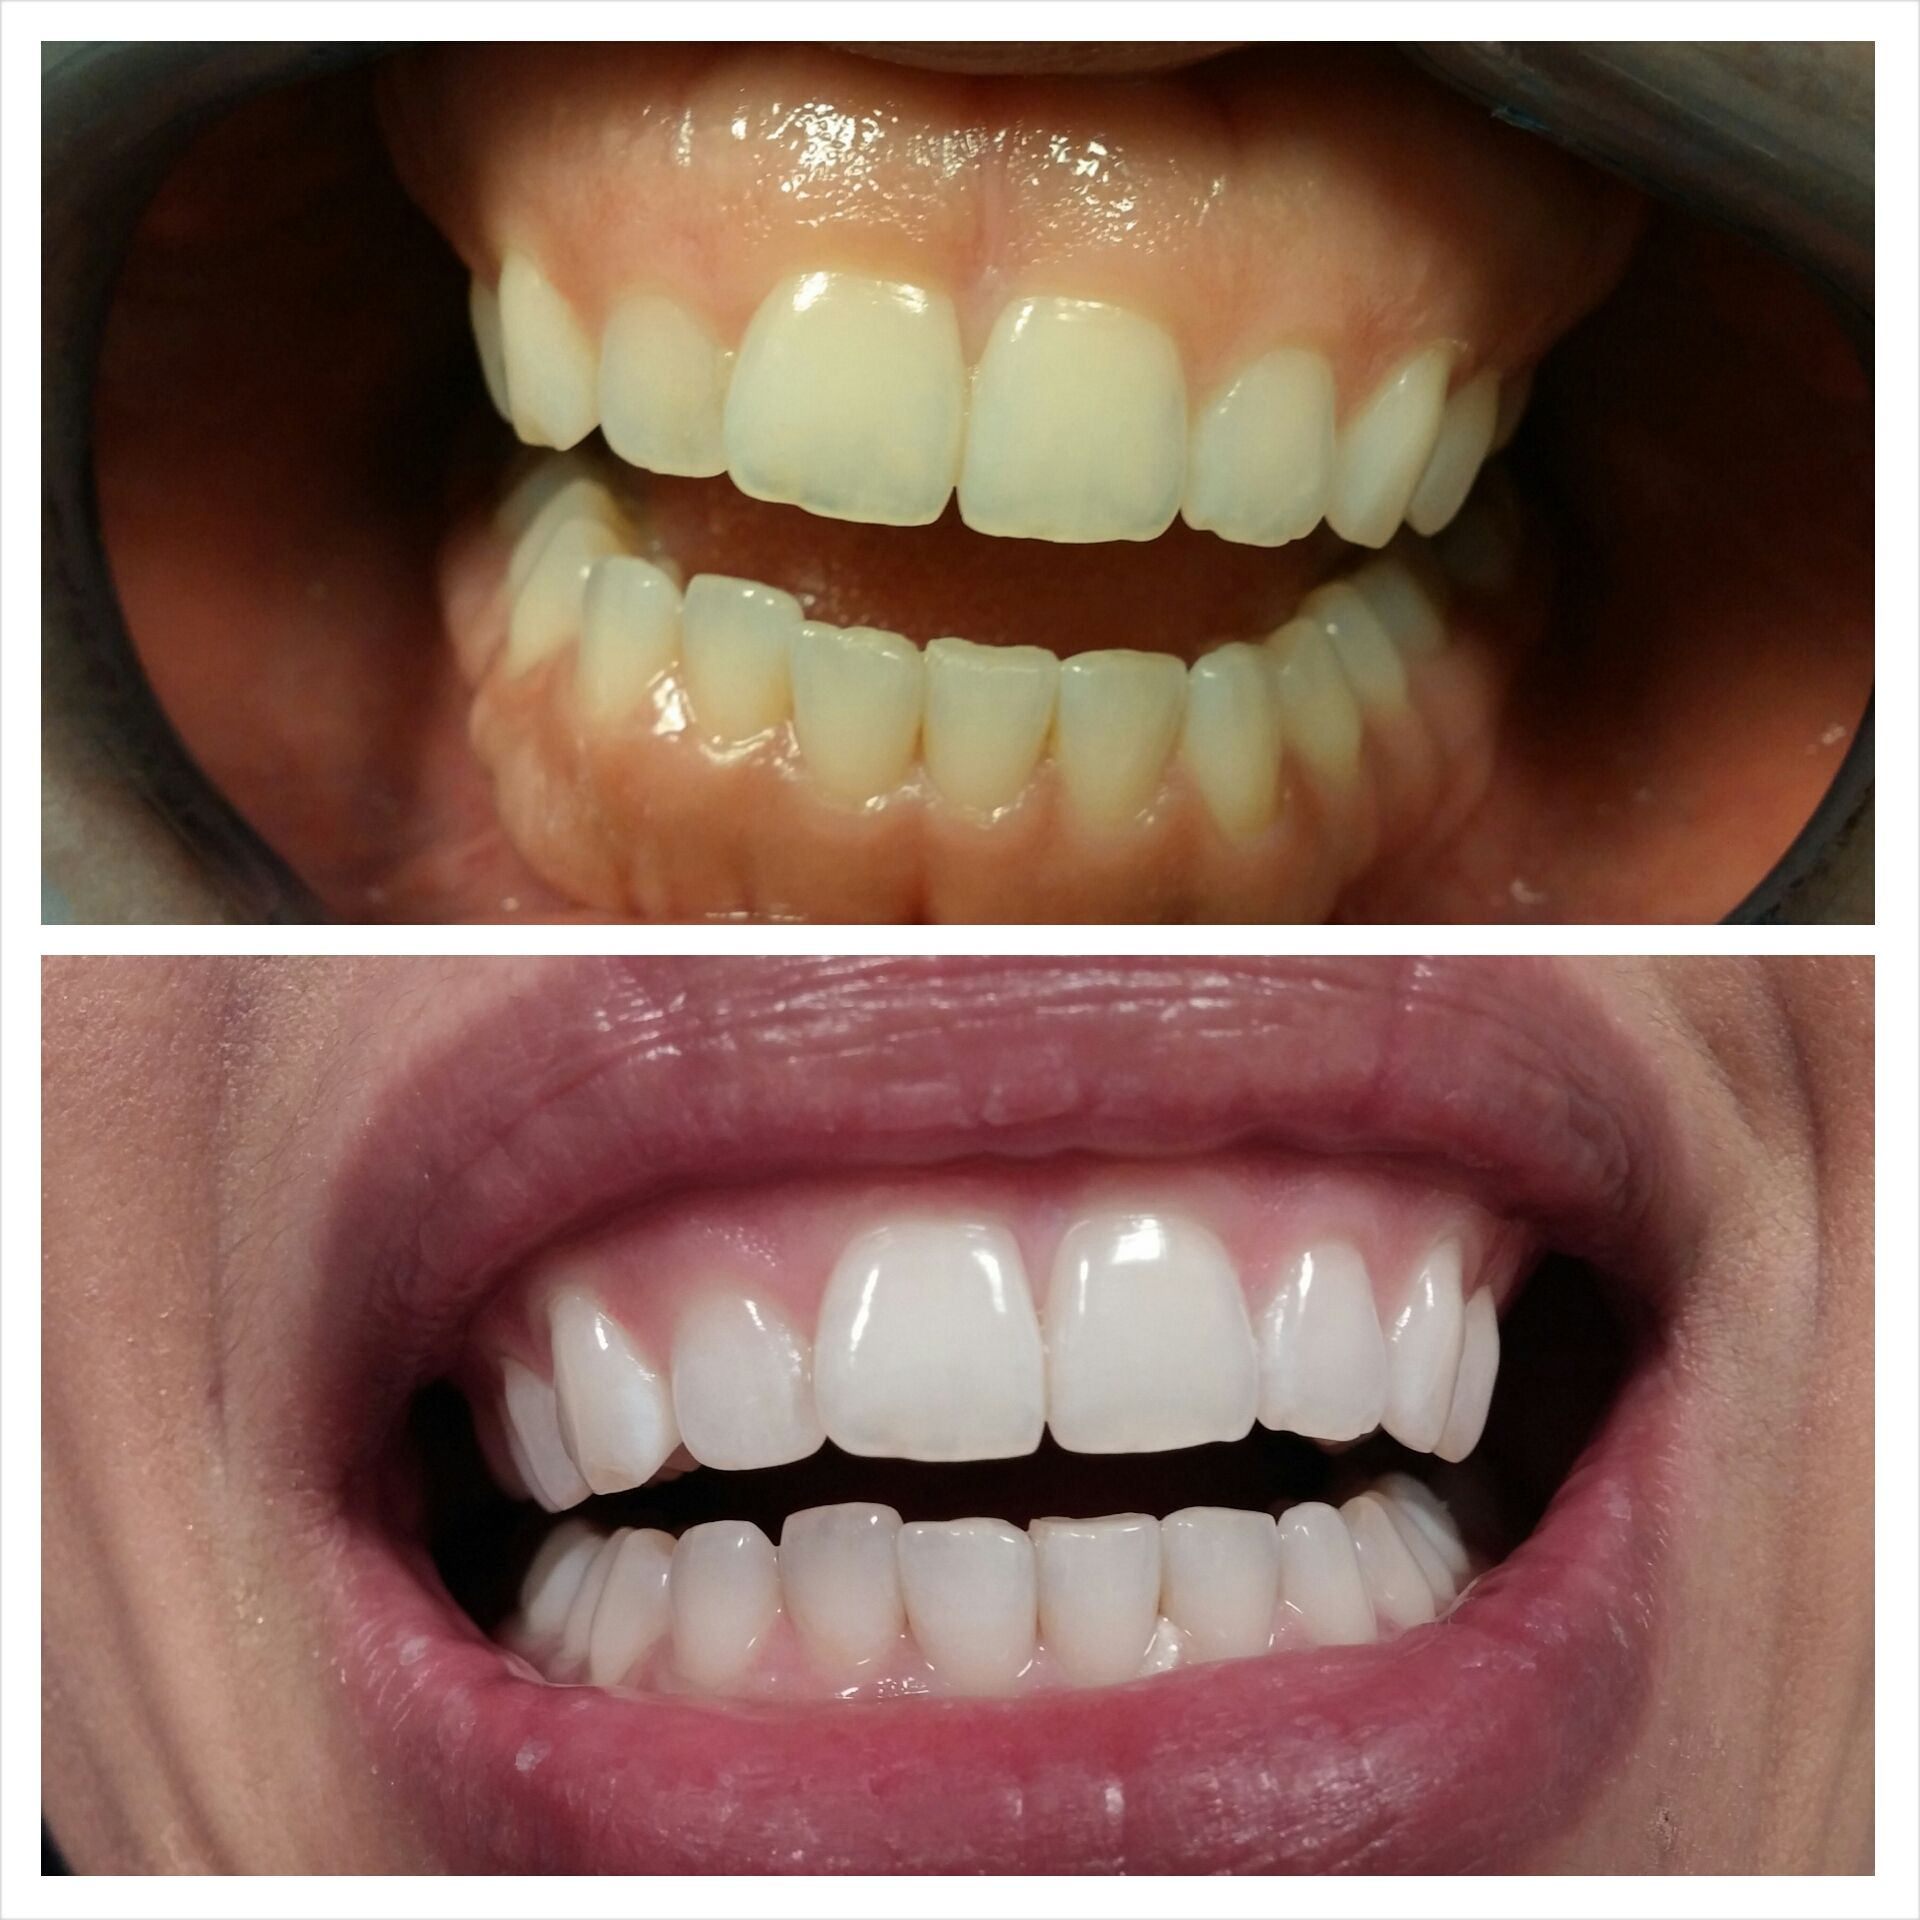 Whitening treatment as is indicated by comparison to the whitening - Here You Can Learn What Should You Know Before Take Laser Teeth Whitening Treatment